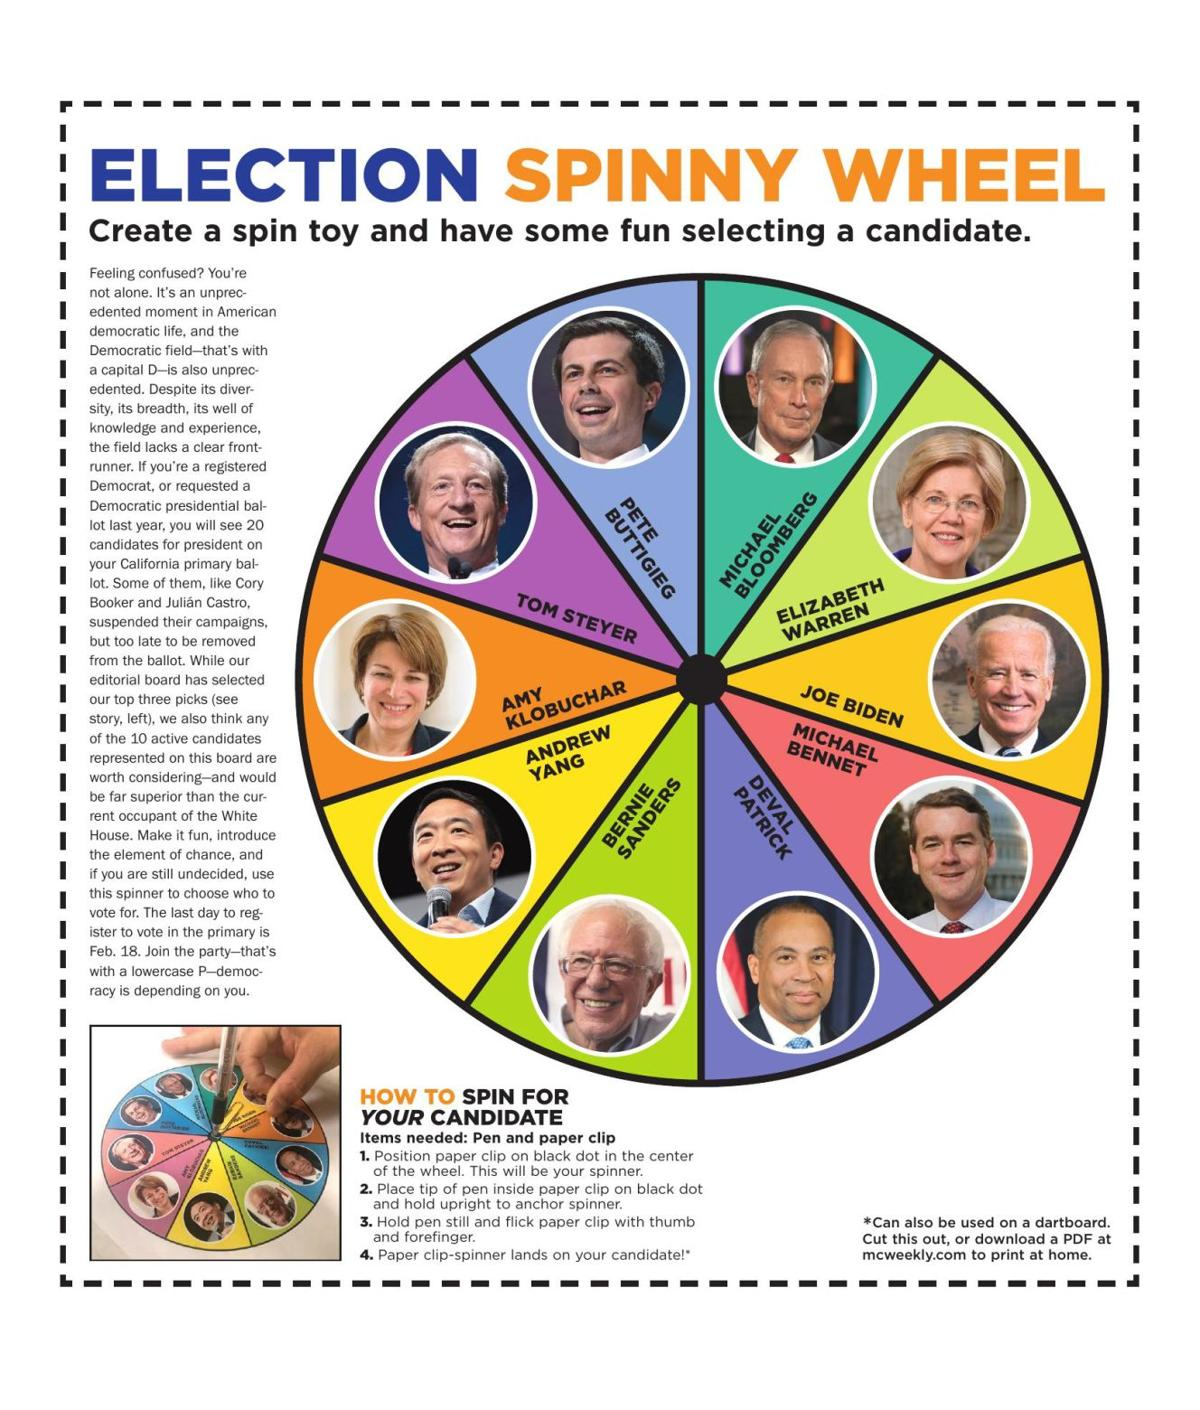 Election Spinny Wheel 2020